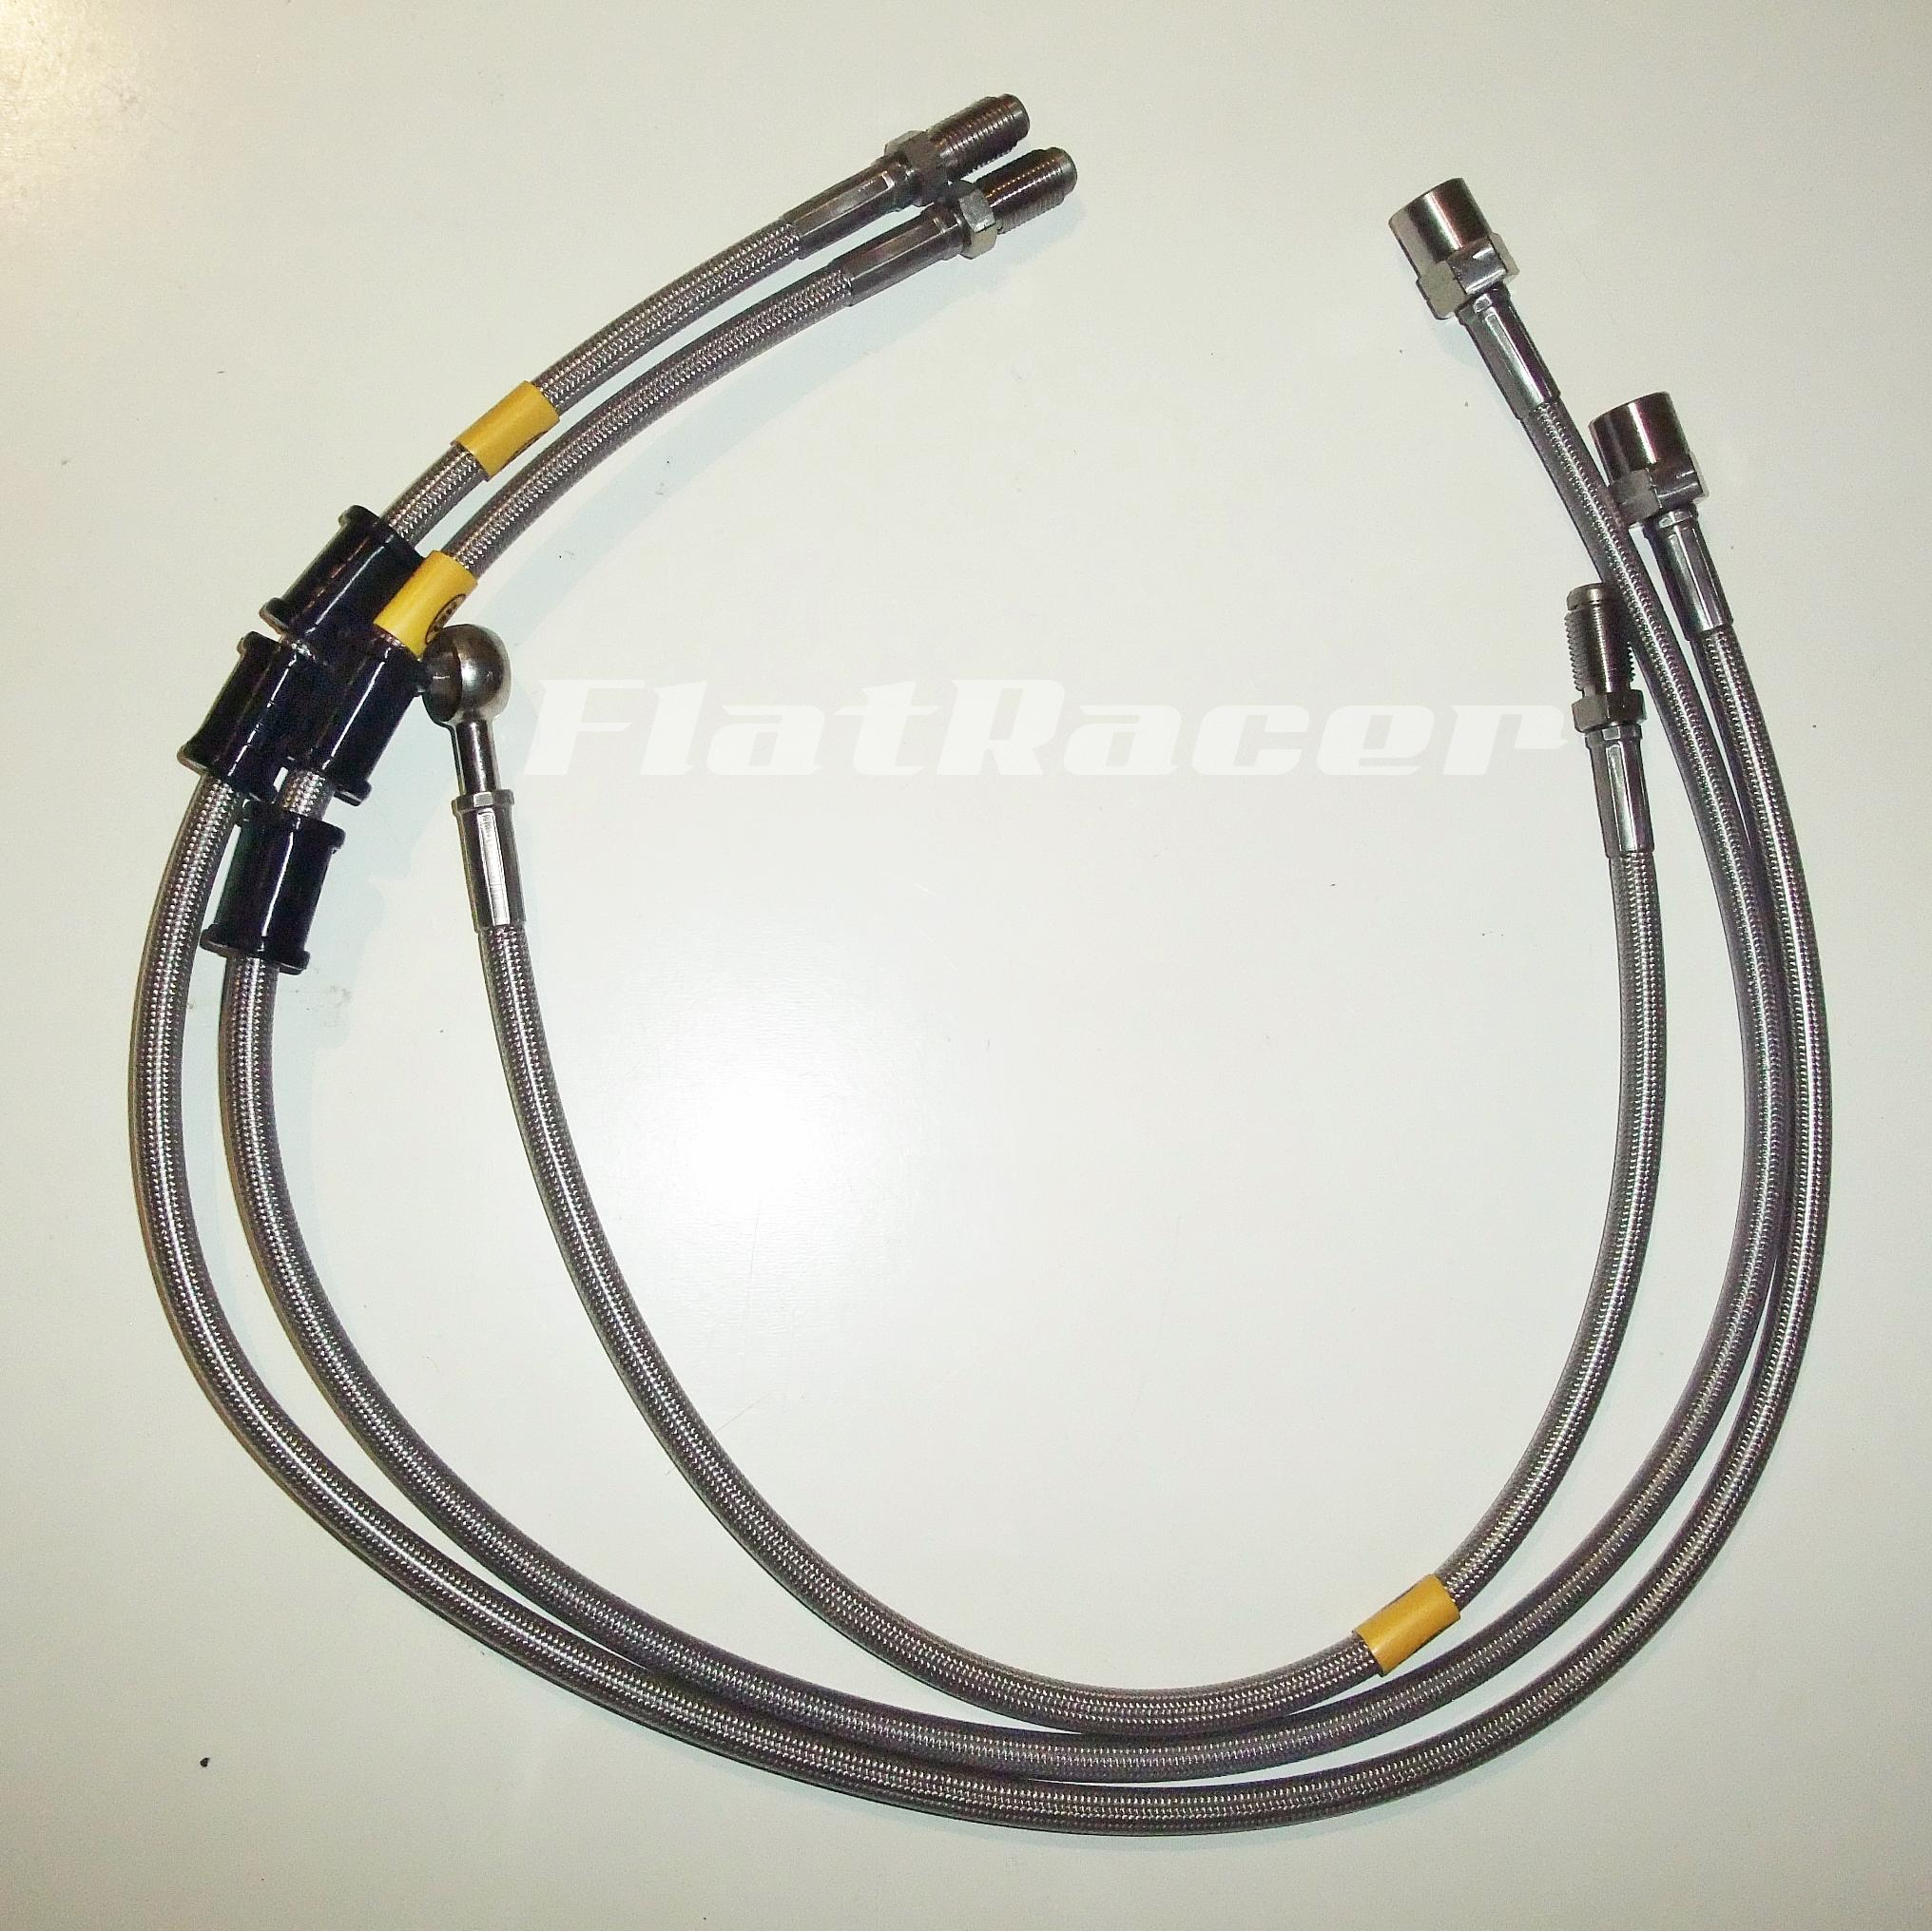 BMW Series /7 (81-84) s/s braided brake hoses - FRONT - 3 lines (MEDIUM BARS)